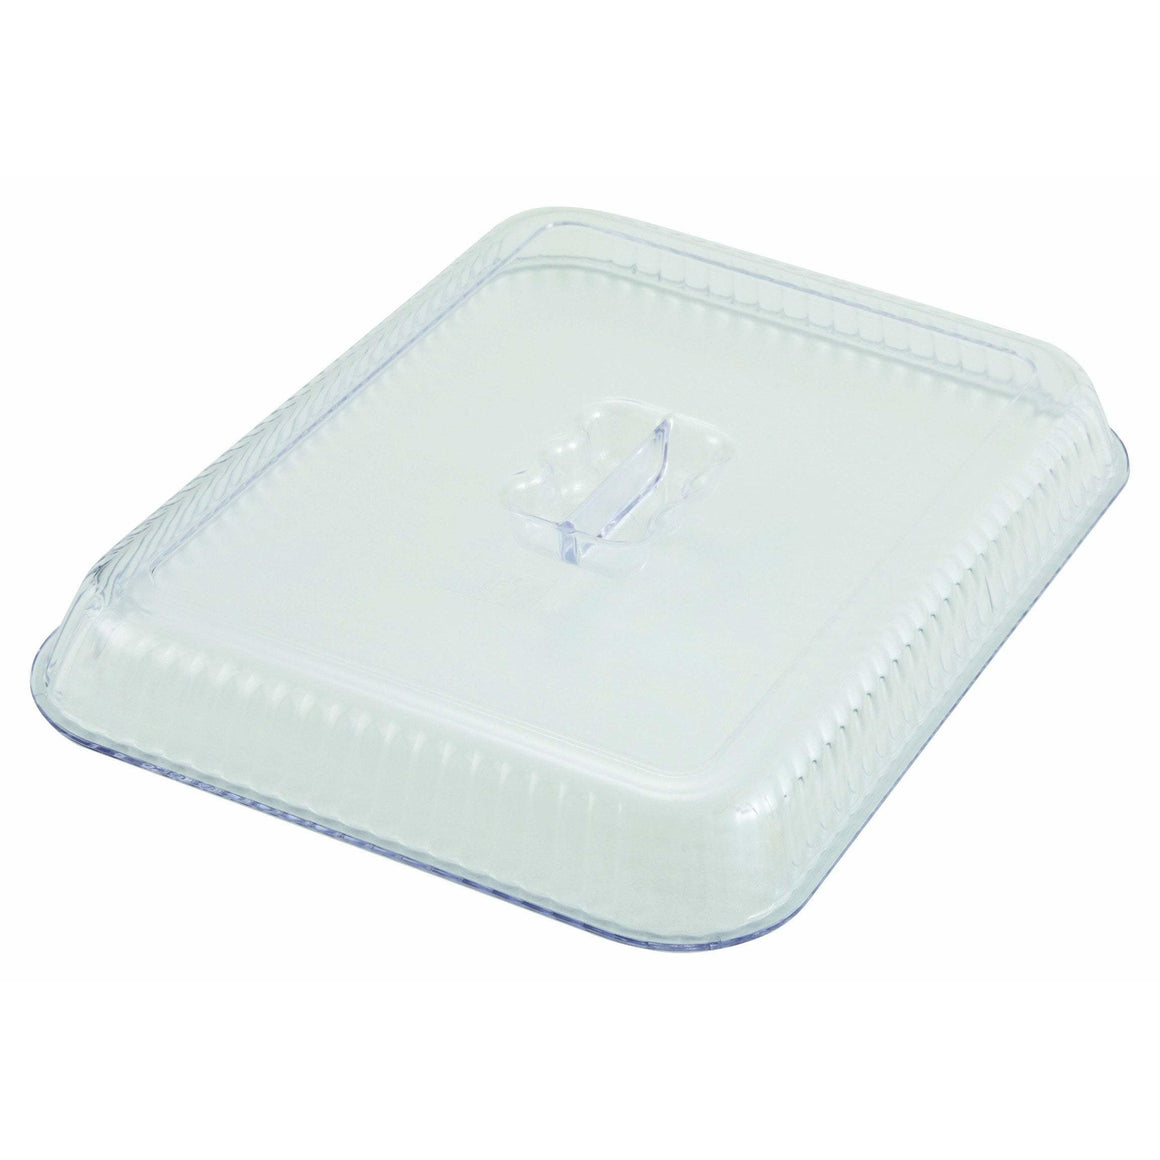 Winco - CRKC-13 - Cover for CRK-13 Series Deli Crocks - Display